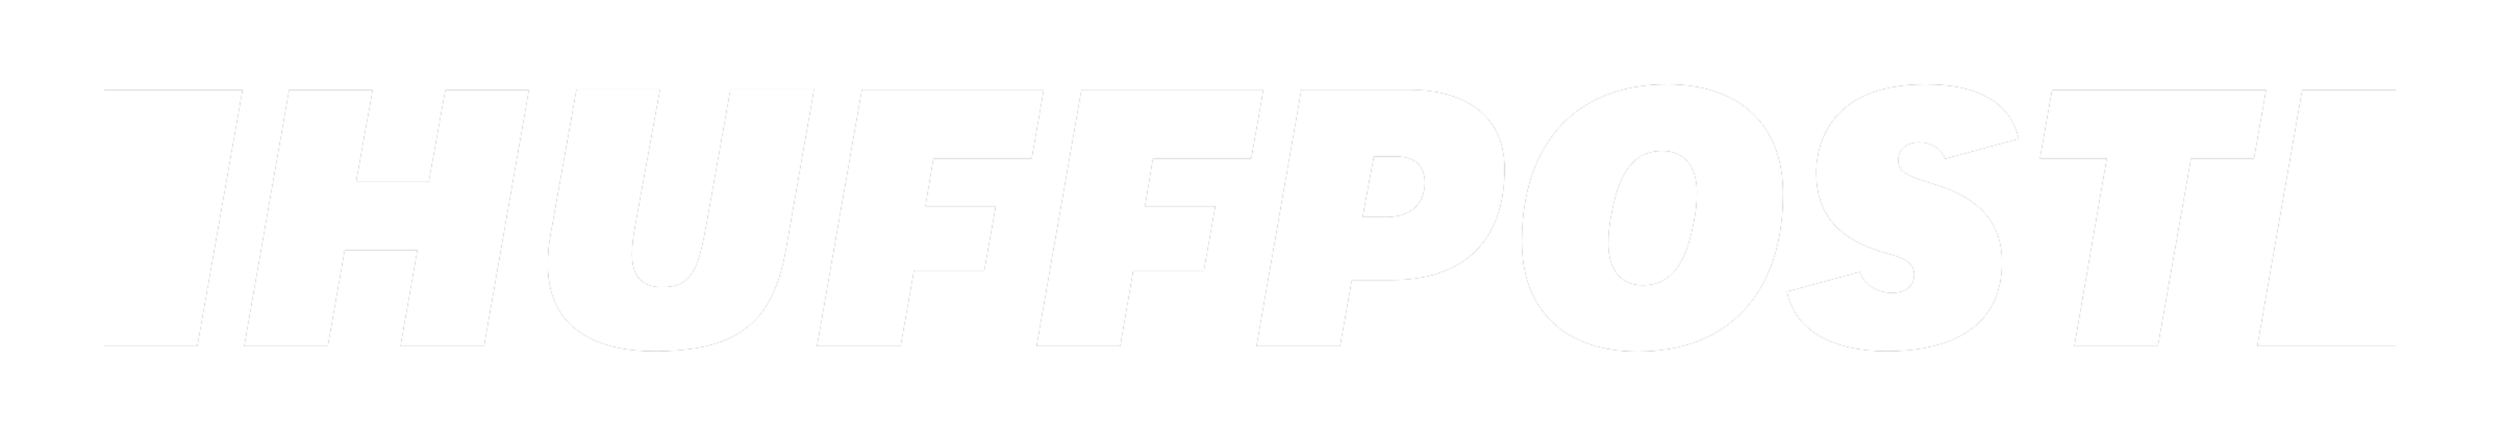 huffpost-logo-white copy1.png